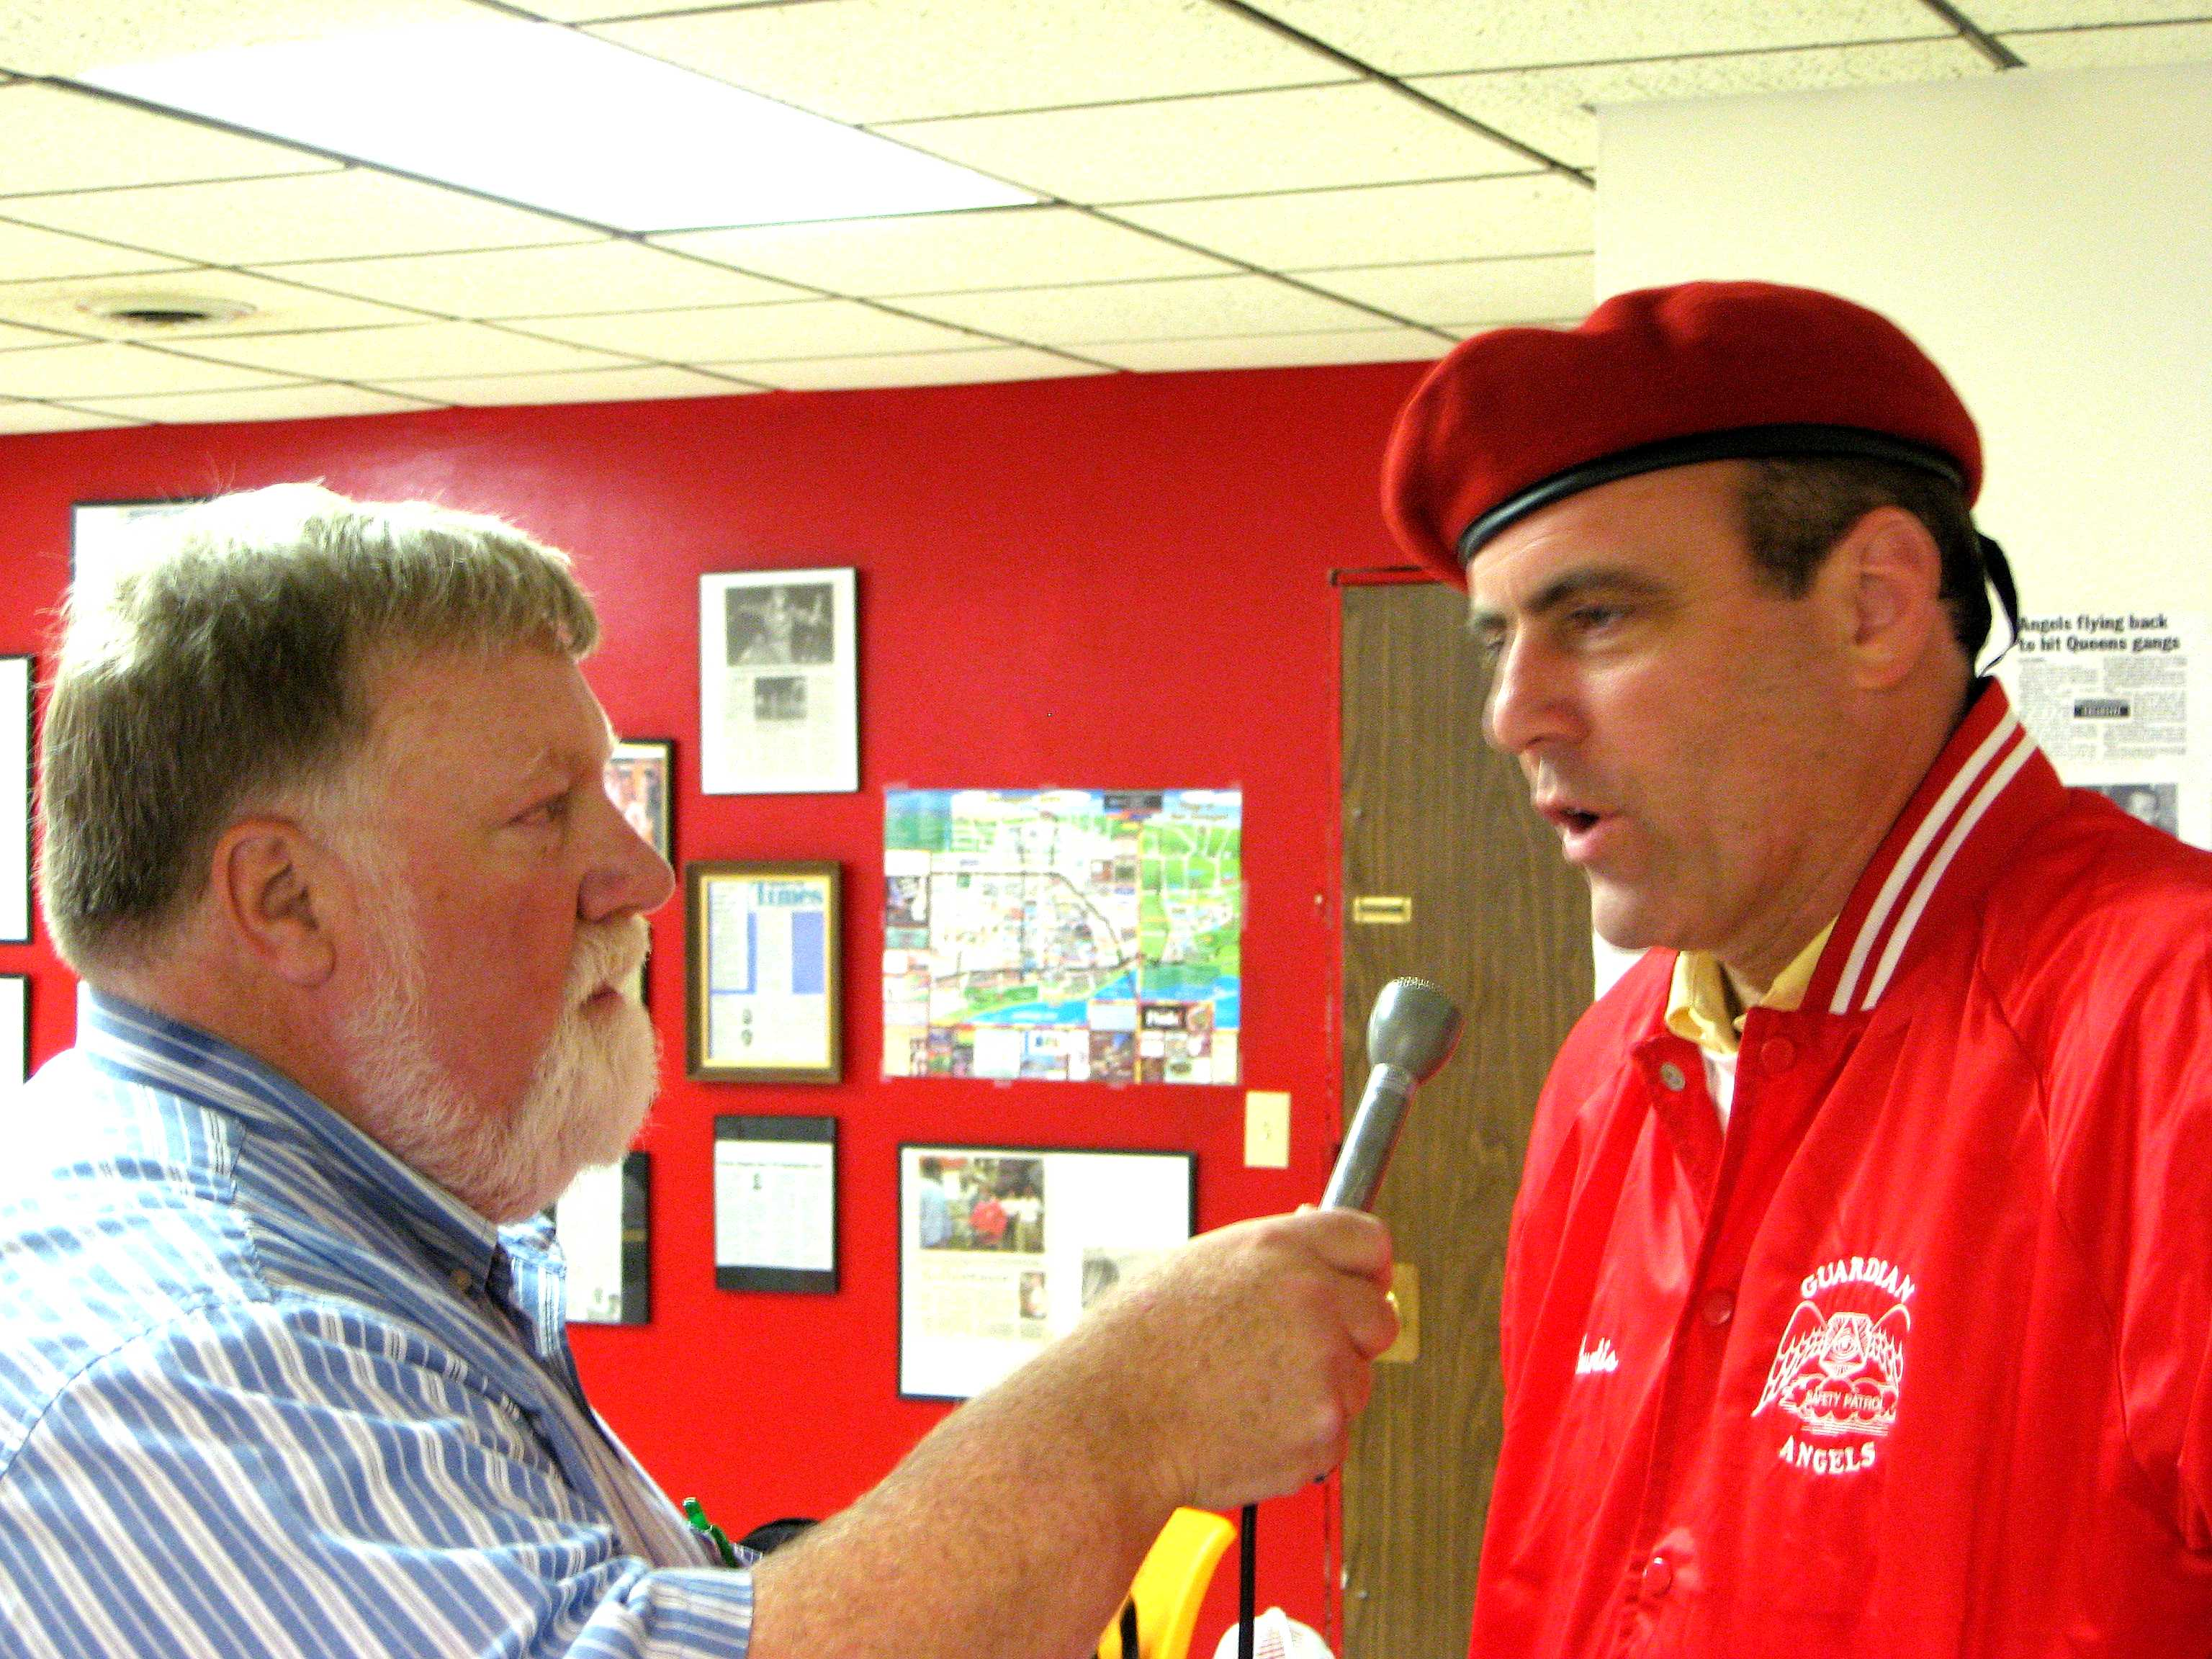 This is a July 2007 interview of Guardian Angels found Curtis Sliwa/